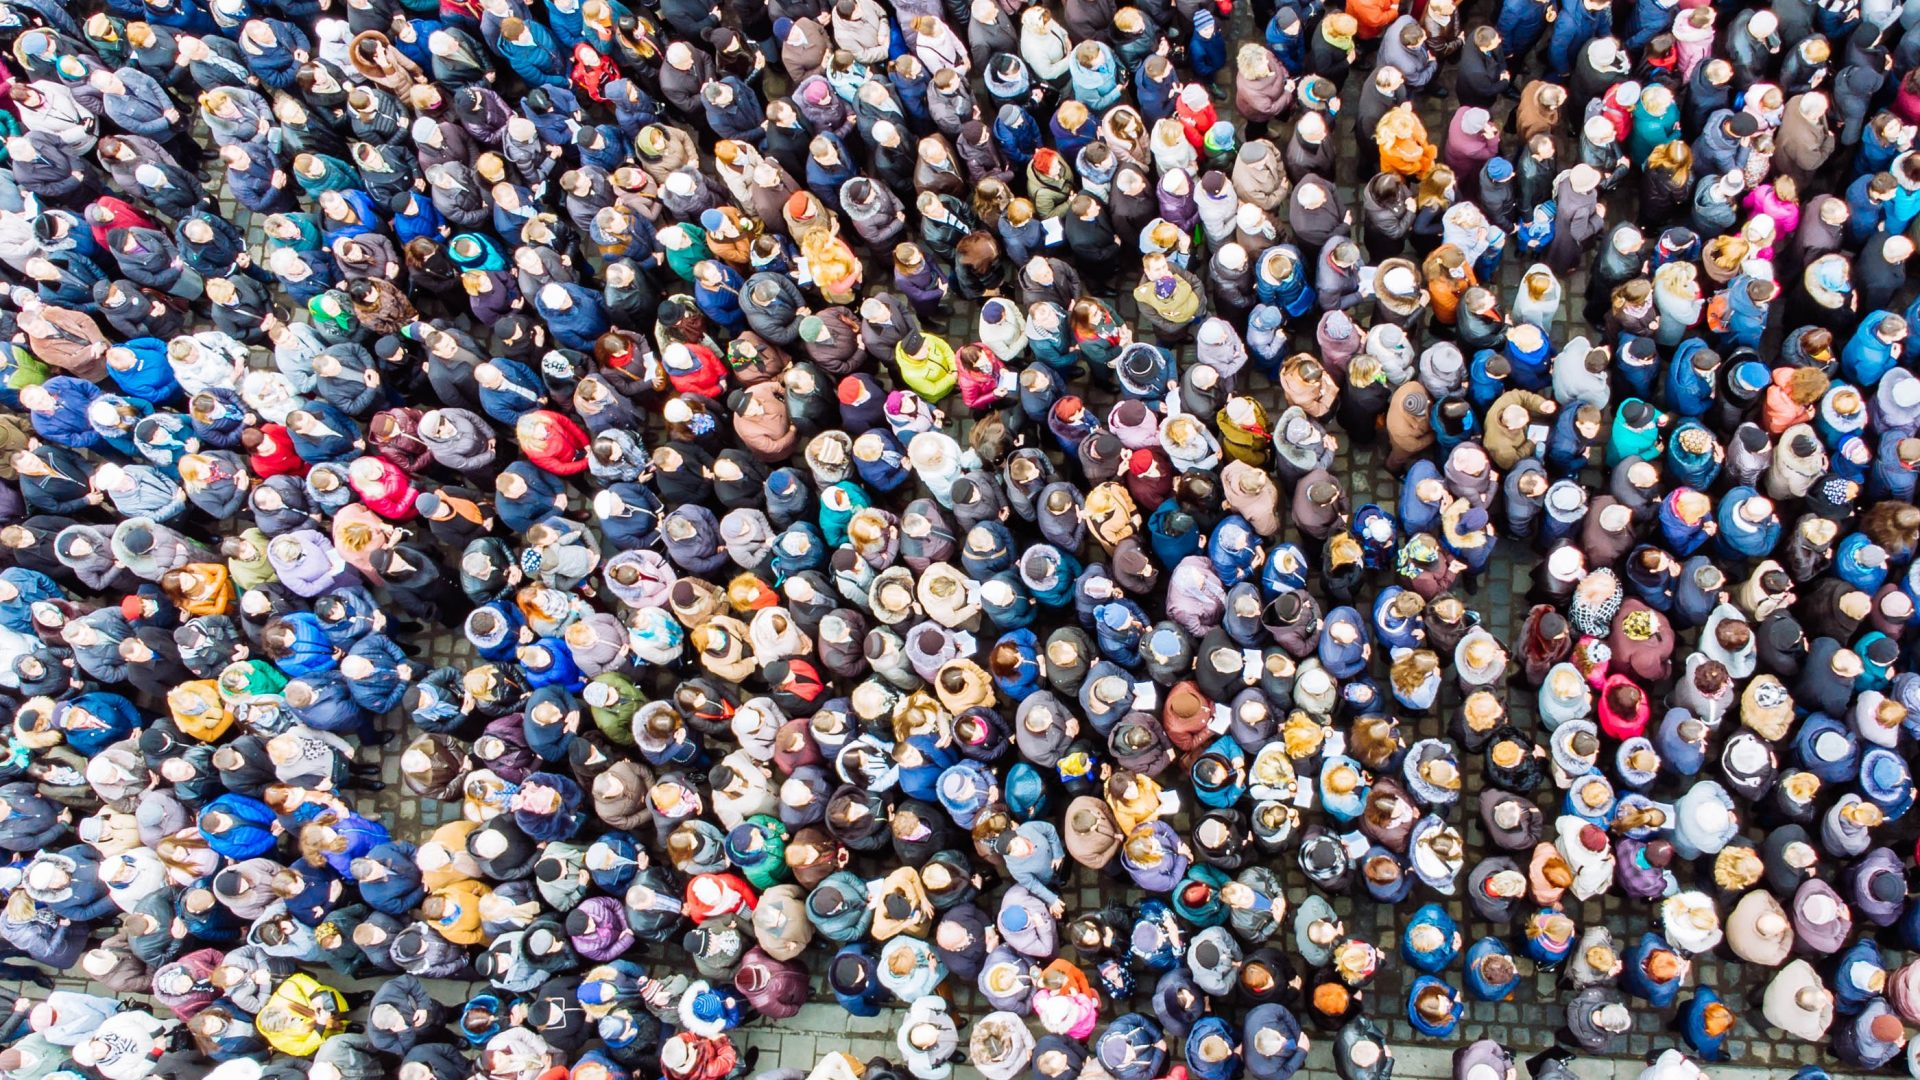 Quiz: Which of these countries has the largest population?